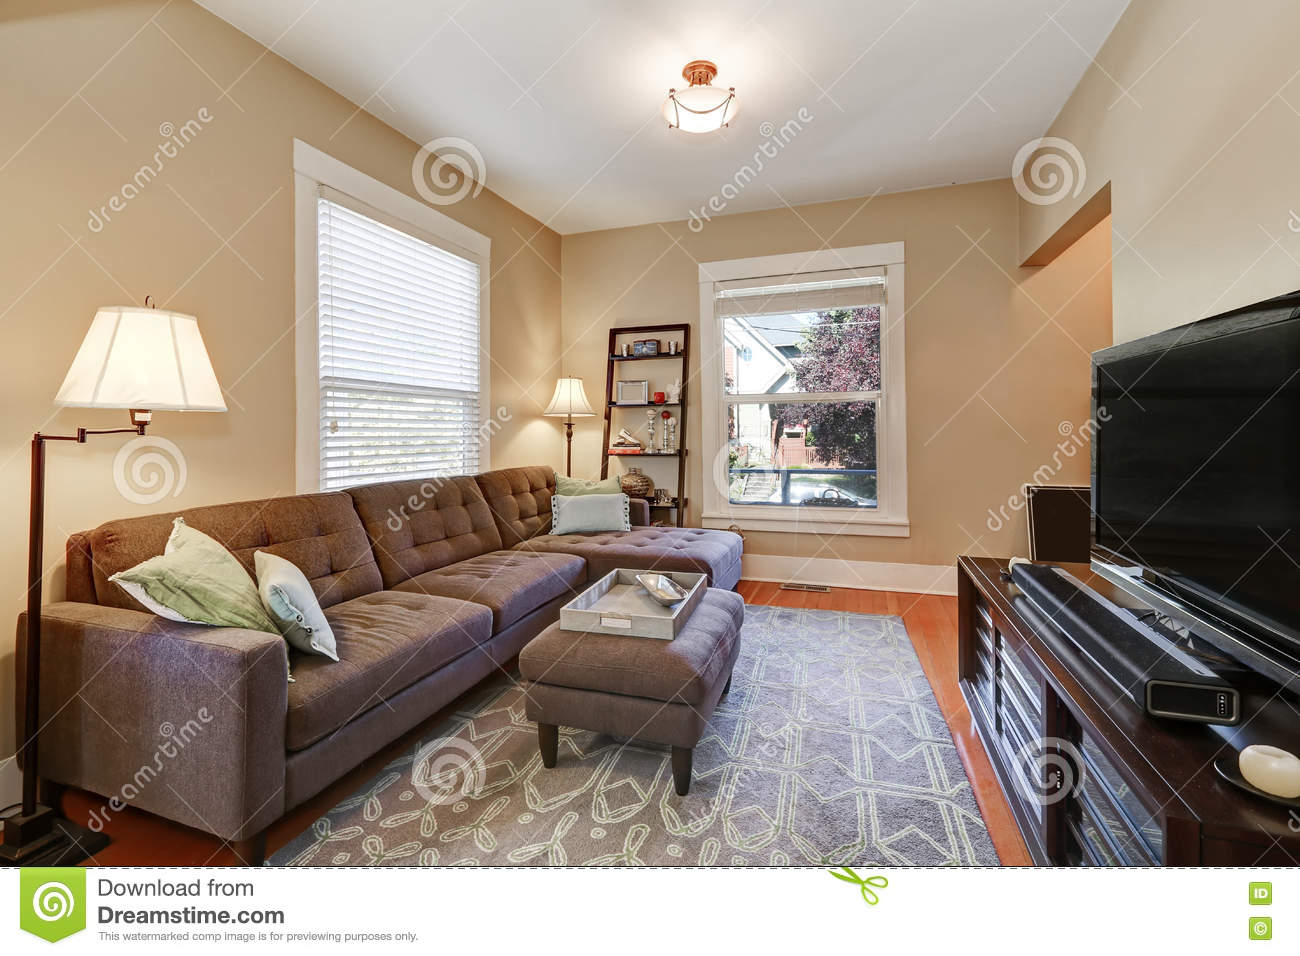 Living Room Set With Free Tv American Living Room Interior With Brown Corner Sofa Stock Photo